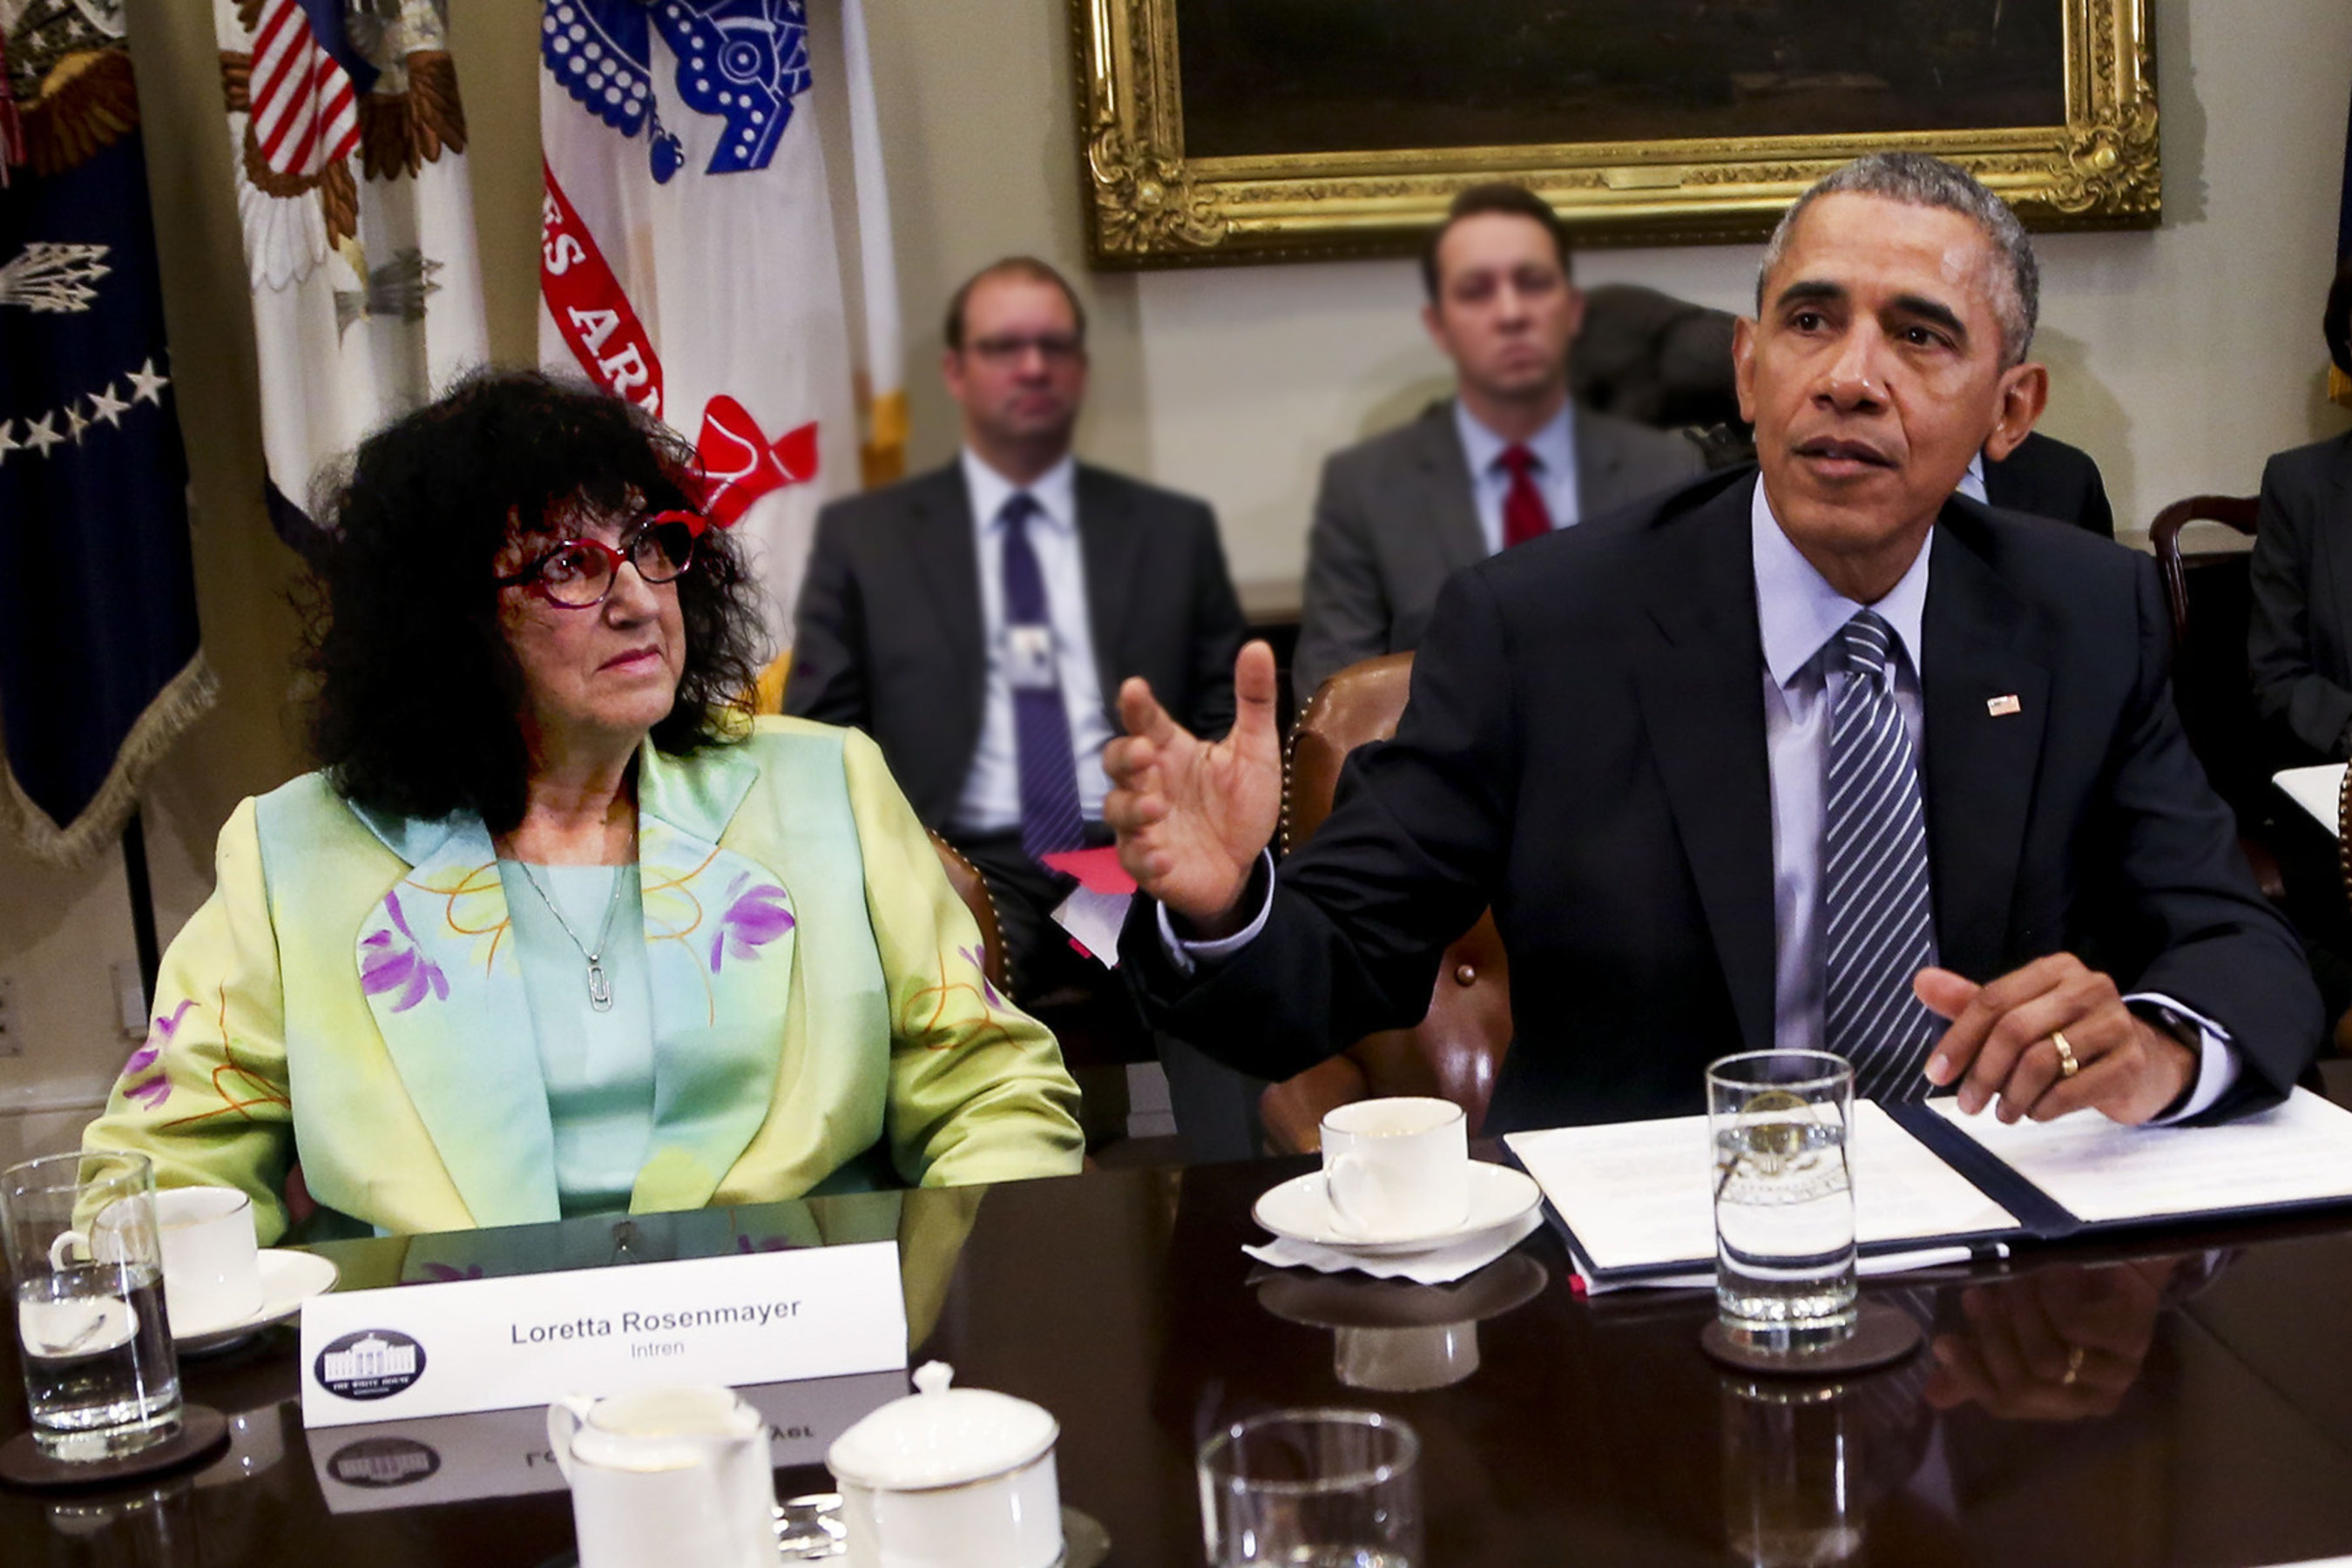 INTREN CEO, Loretta Rosenmayer, meets with President Obama on global climate initiatives.